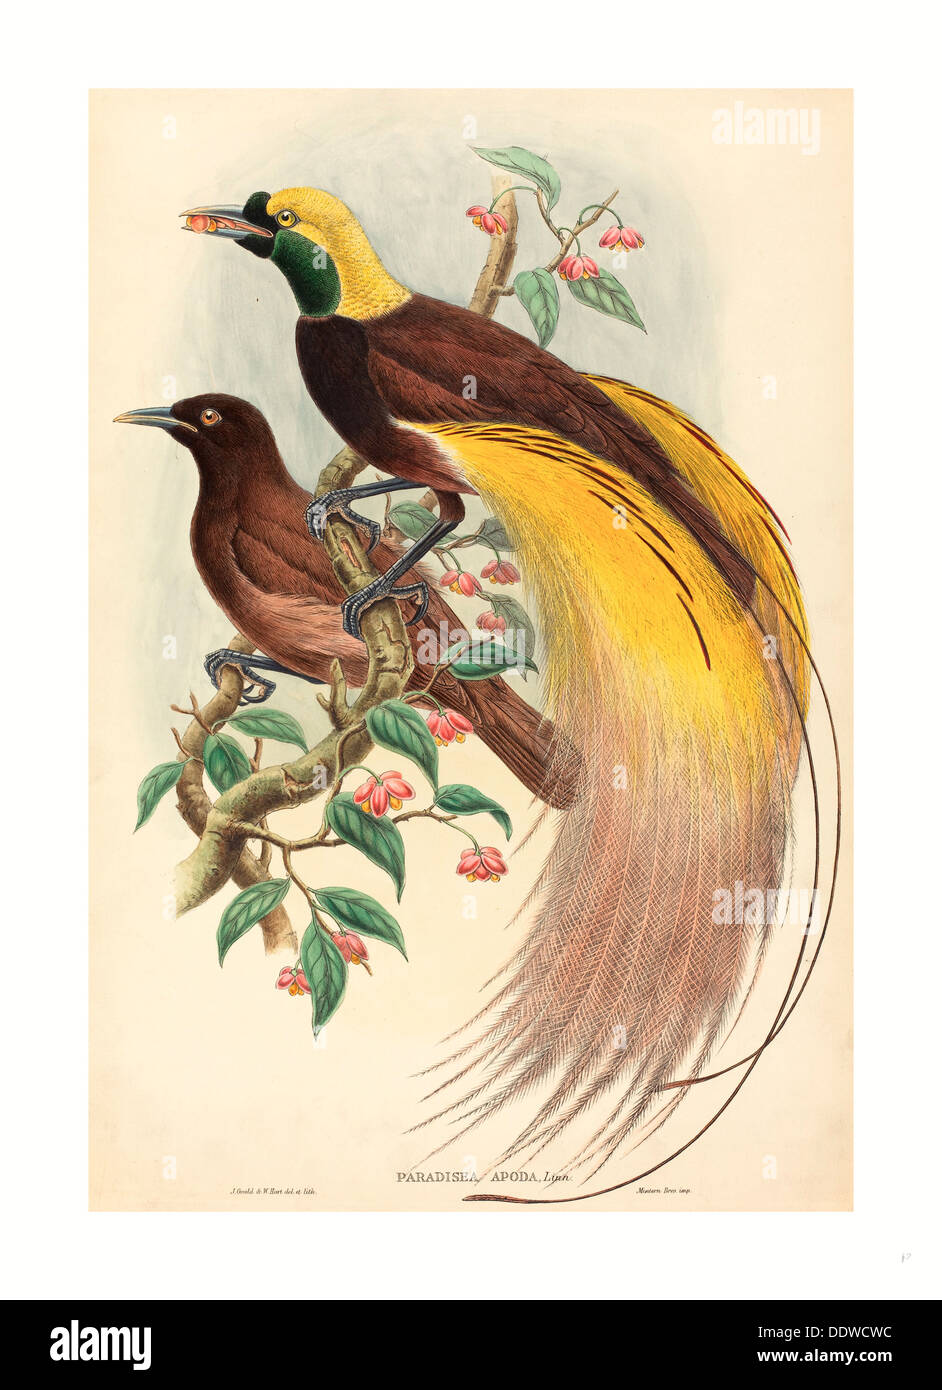 John Gould and W. Hart (British, 1804 - 1881 ), Bird of Paradise (Paradisea apoda), published 1875 1888, hand colored - Stock Image